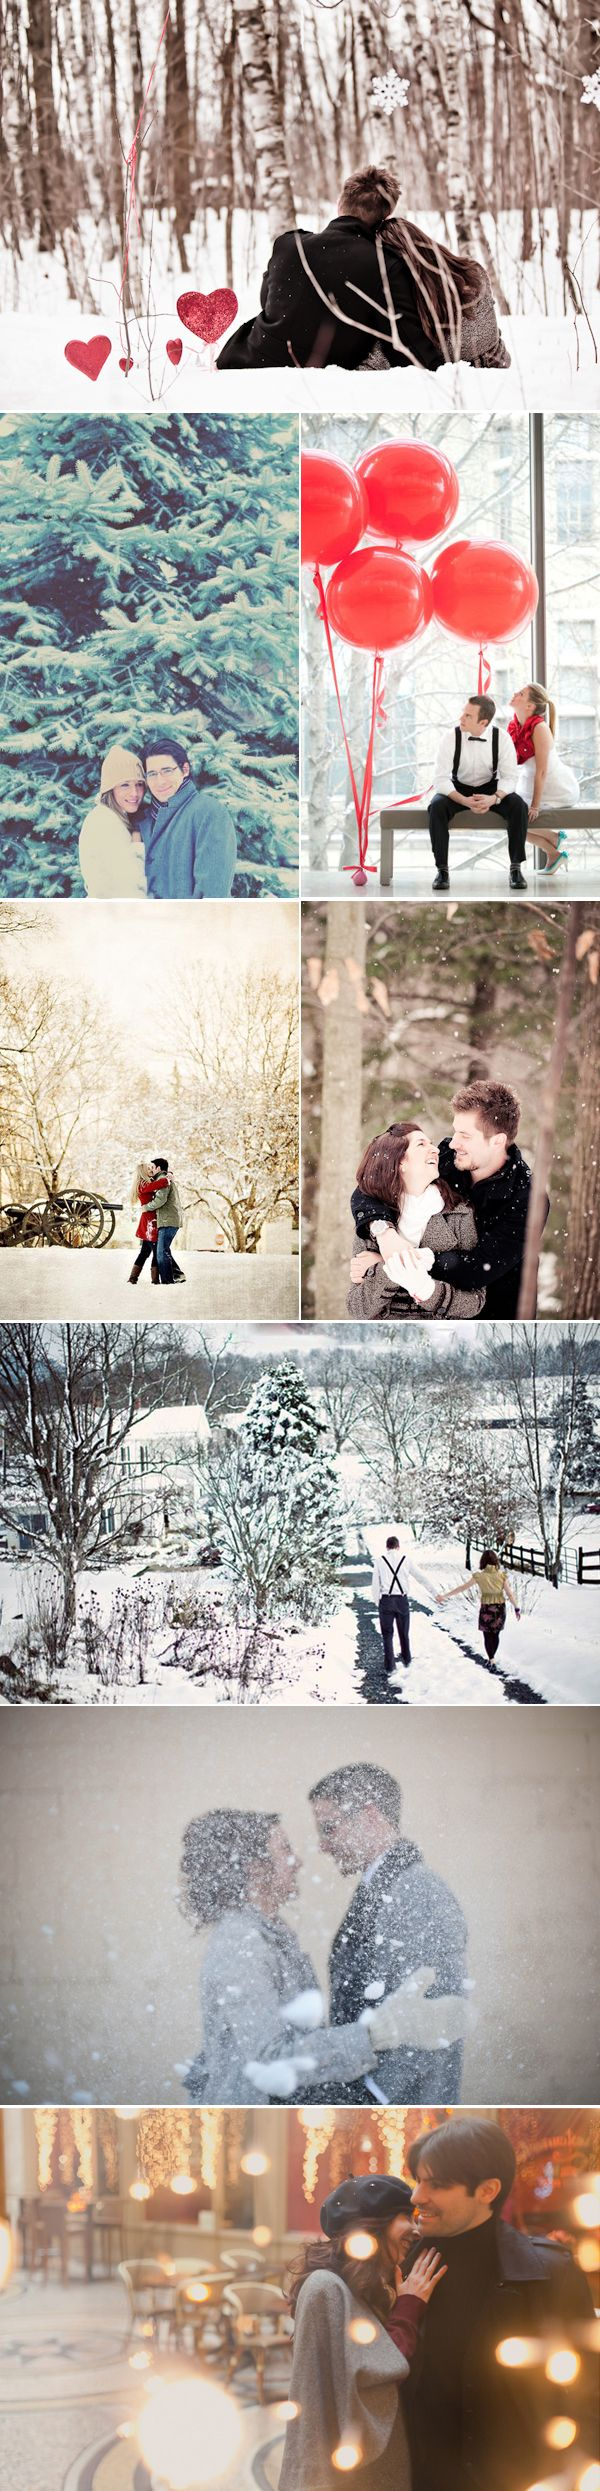 39 Winter Engagement Photos. All of my plans are in summer. Well, what the heck? What if I get married in winter?